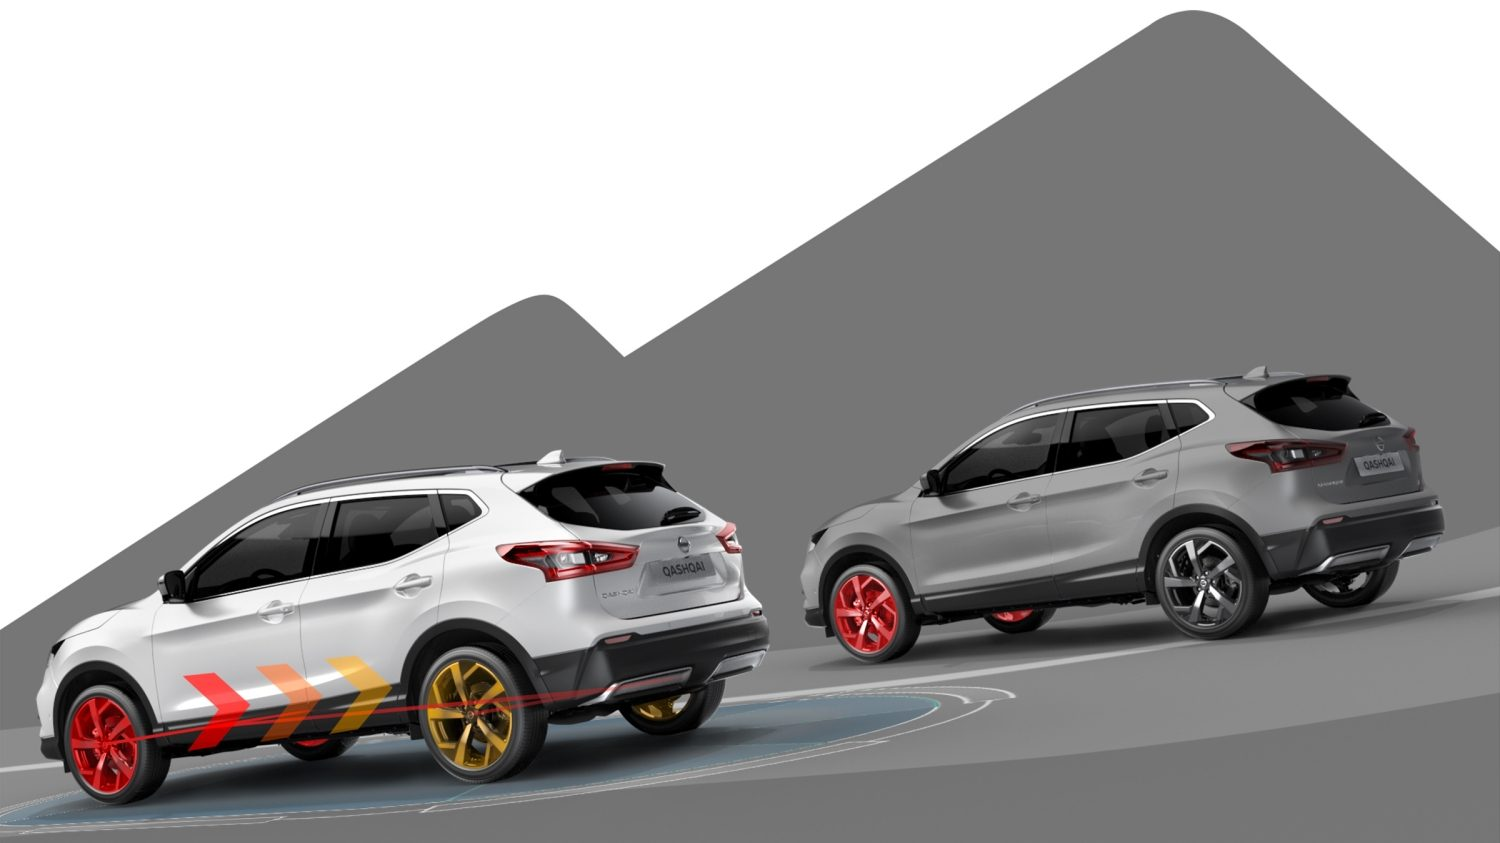 Nissan QASHQAI illustratie Intelligent 4x4